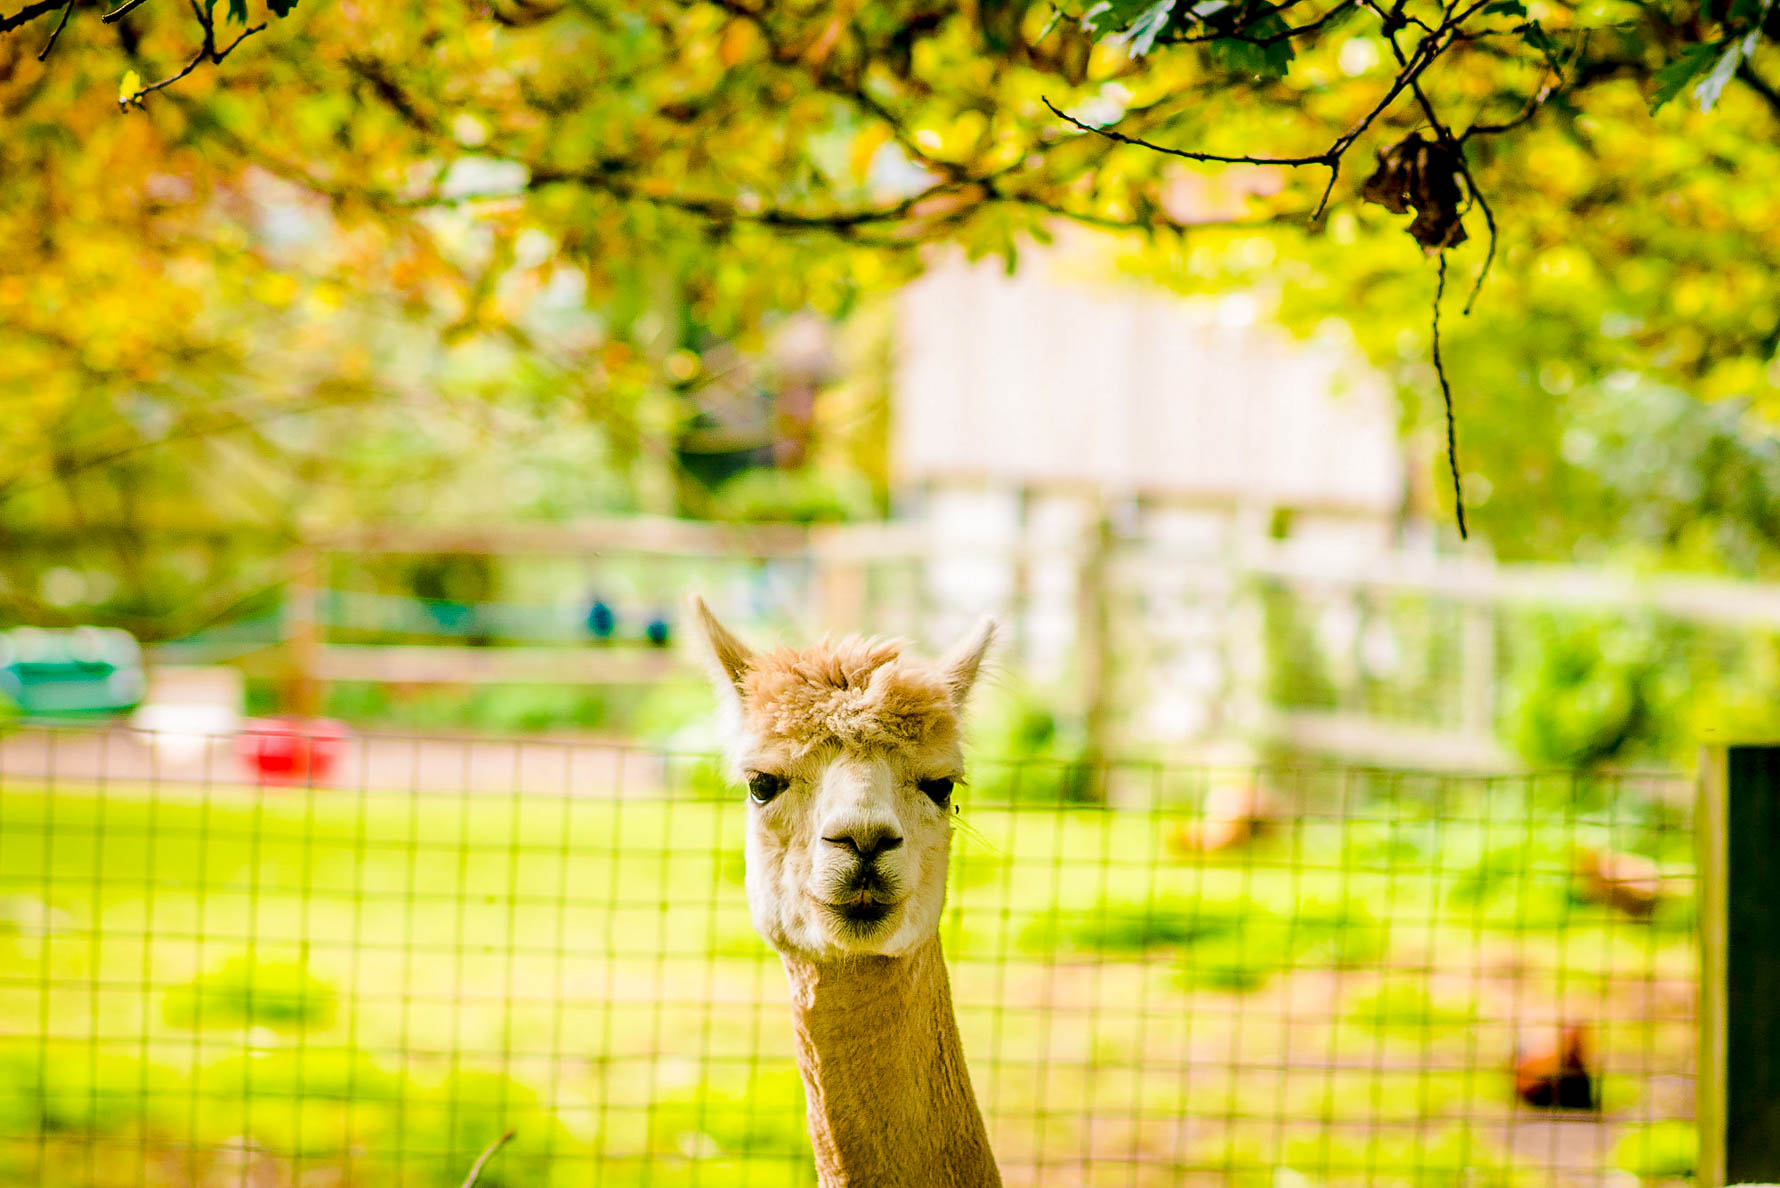 One of the Alpacas at Horsley Hale Farm in Cambridgeshire